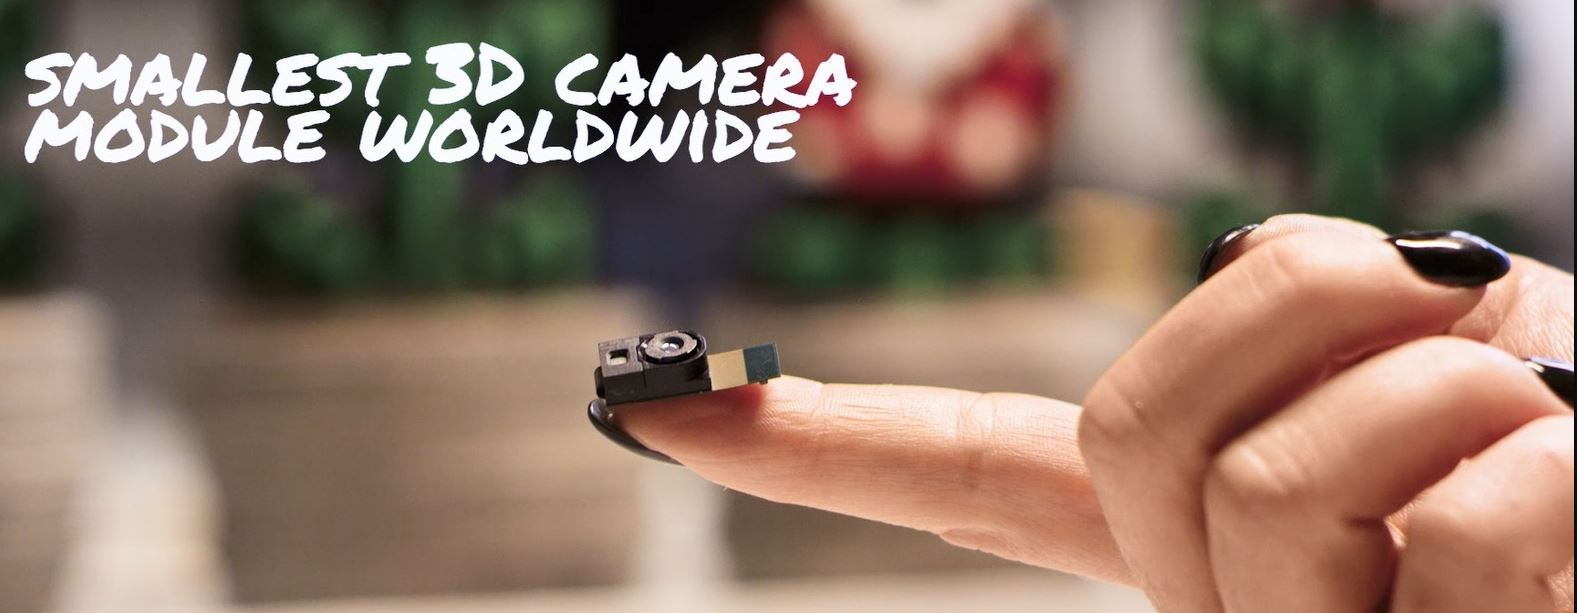 Image Sensors World: PMD Presents World's Smallest 3D Camera